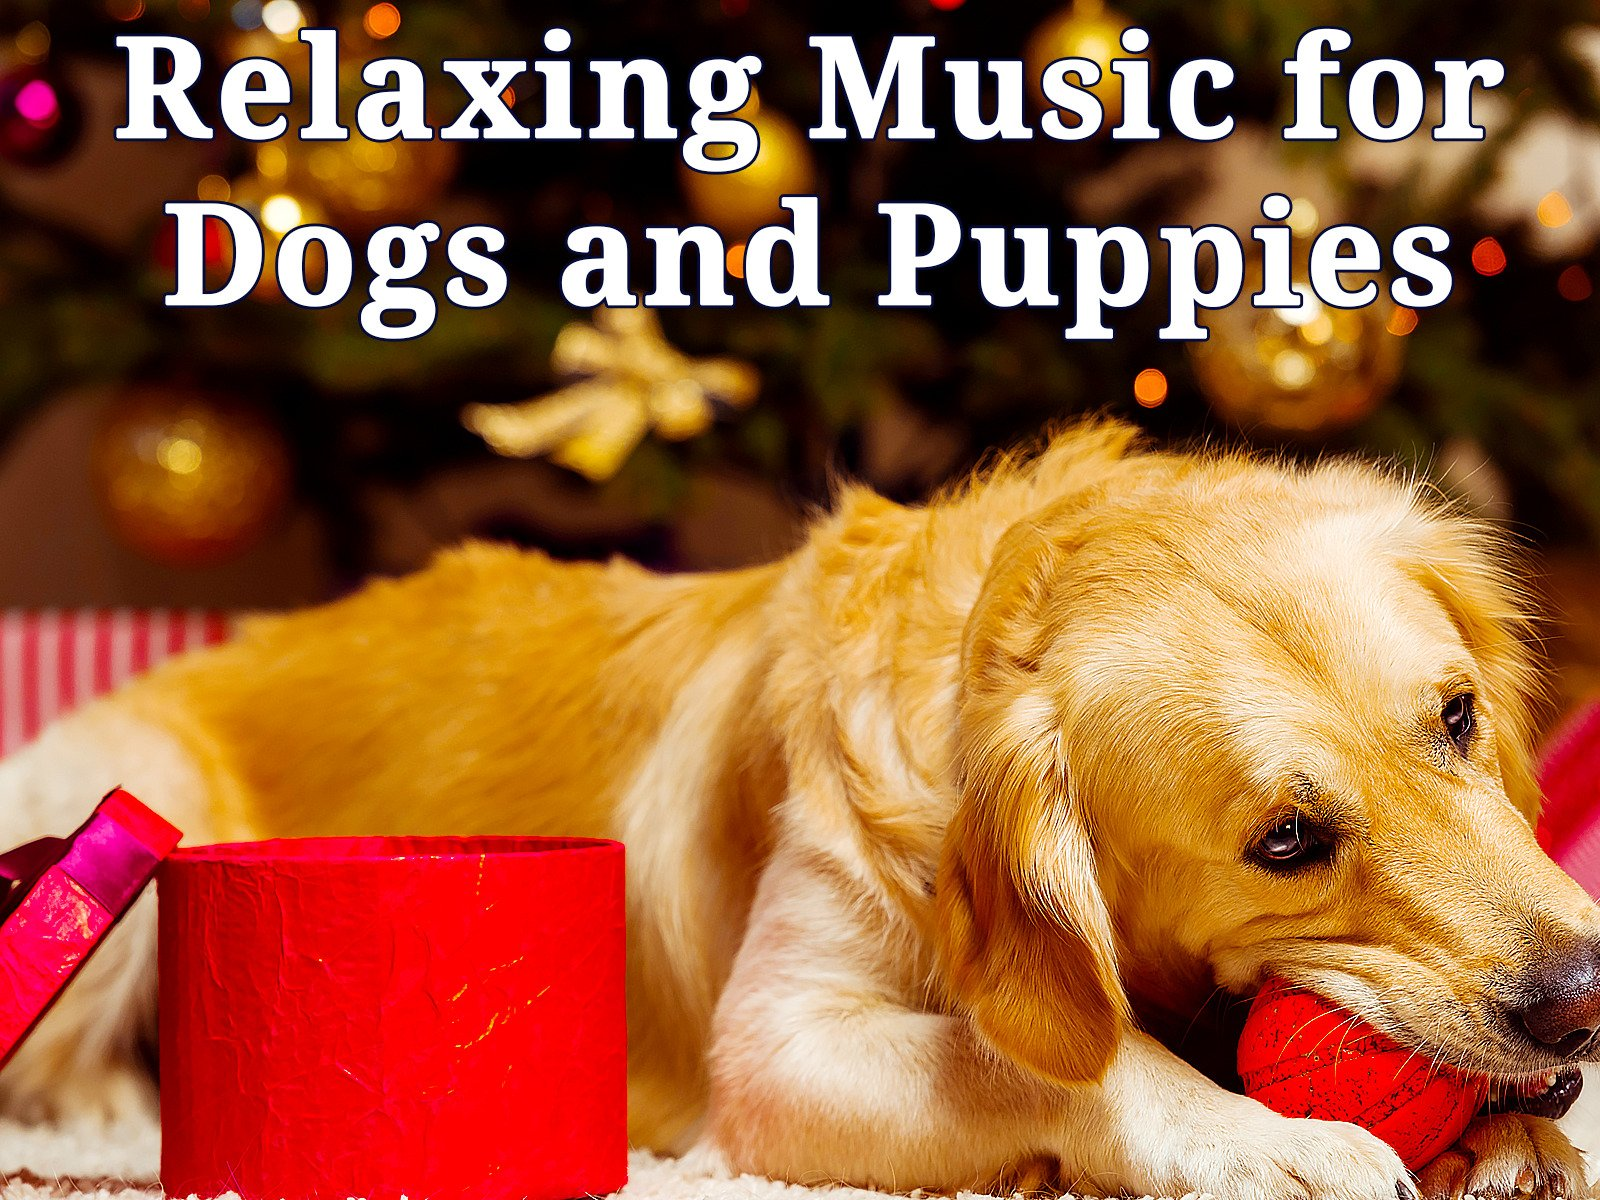 Relaxing Music for Dogs and Puppies